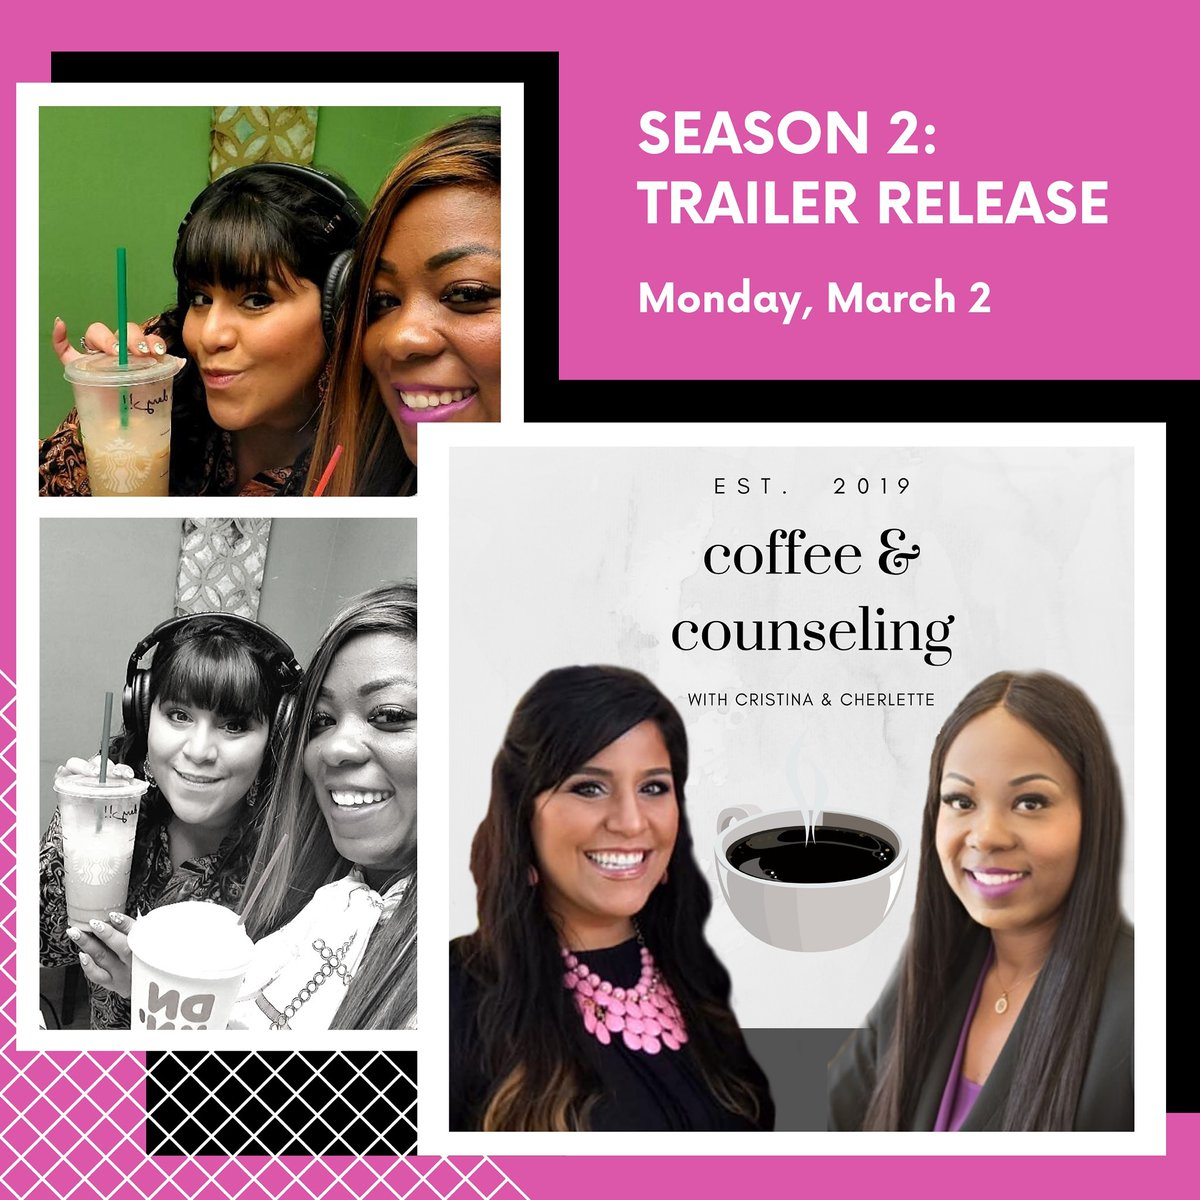 We are backkkkkkkk!!!!!!!  Are you READY for season 2?????? Well, Season 2 trailer will be available to YOU on Monday March 2 830am. Get your coffee and tune in.... pic.twitter.com/ItJTy2uxma